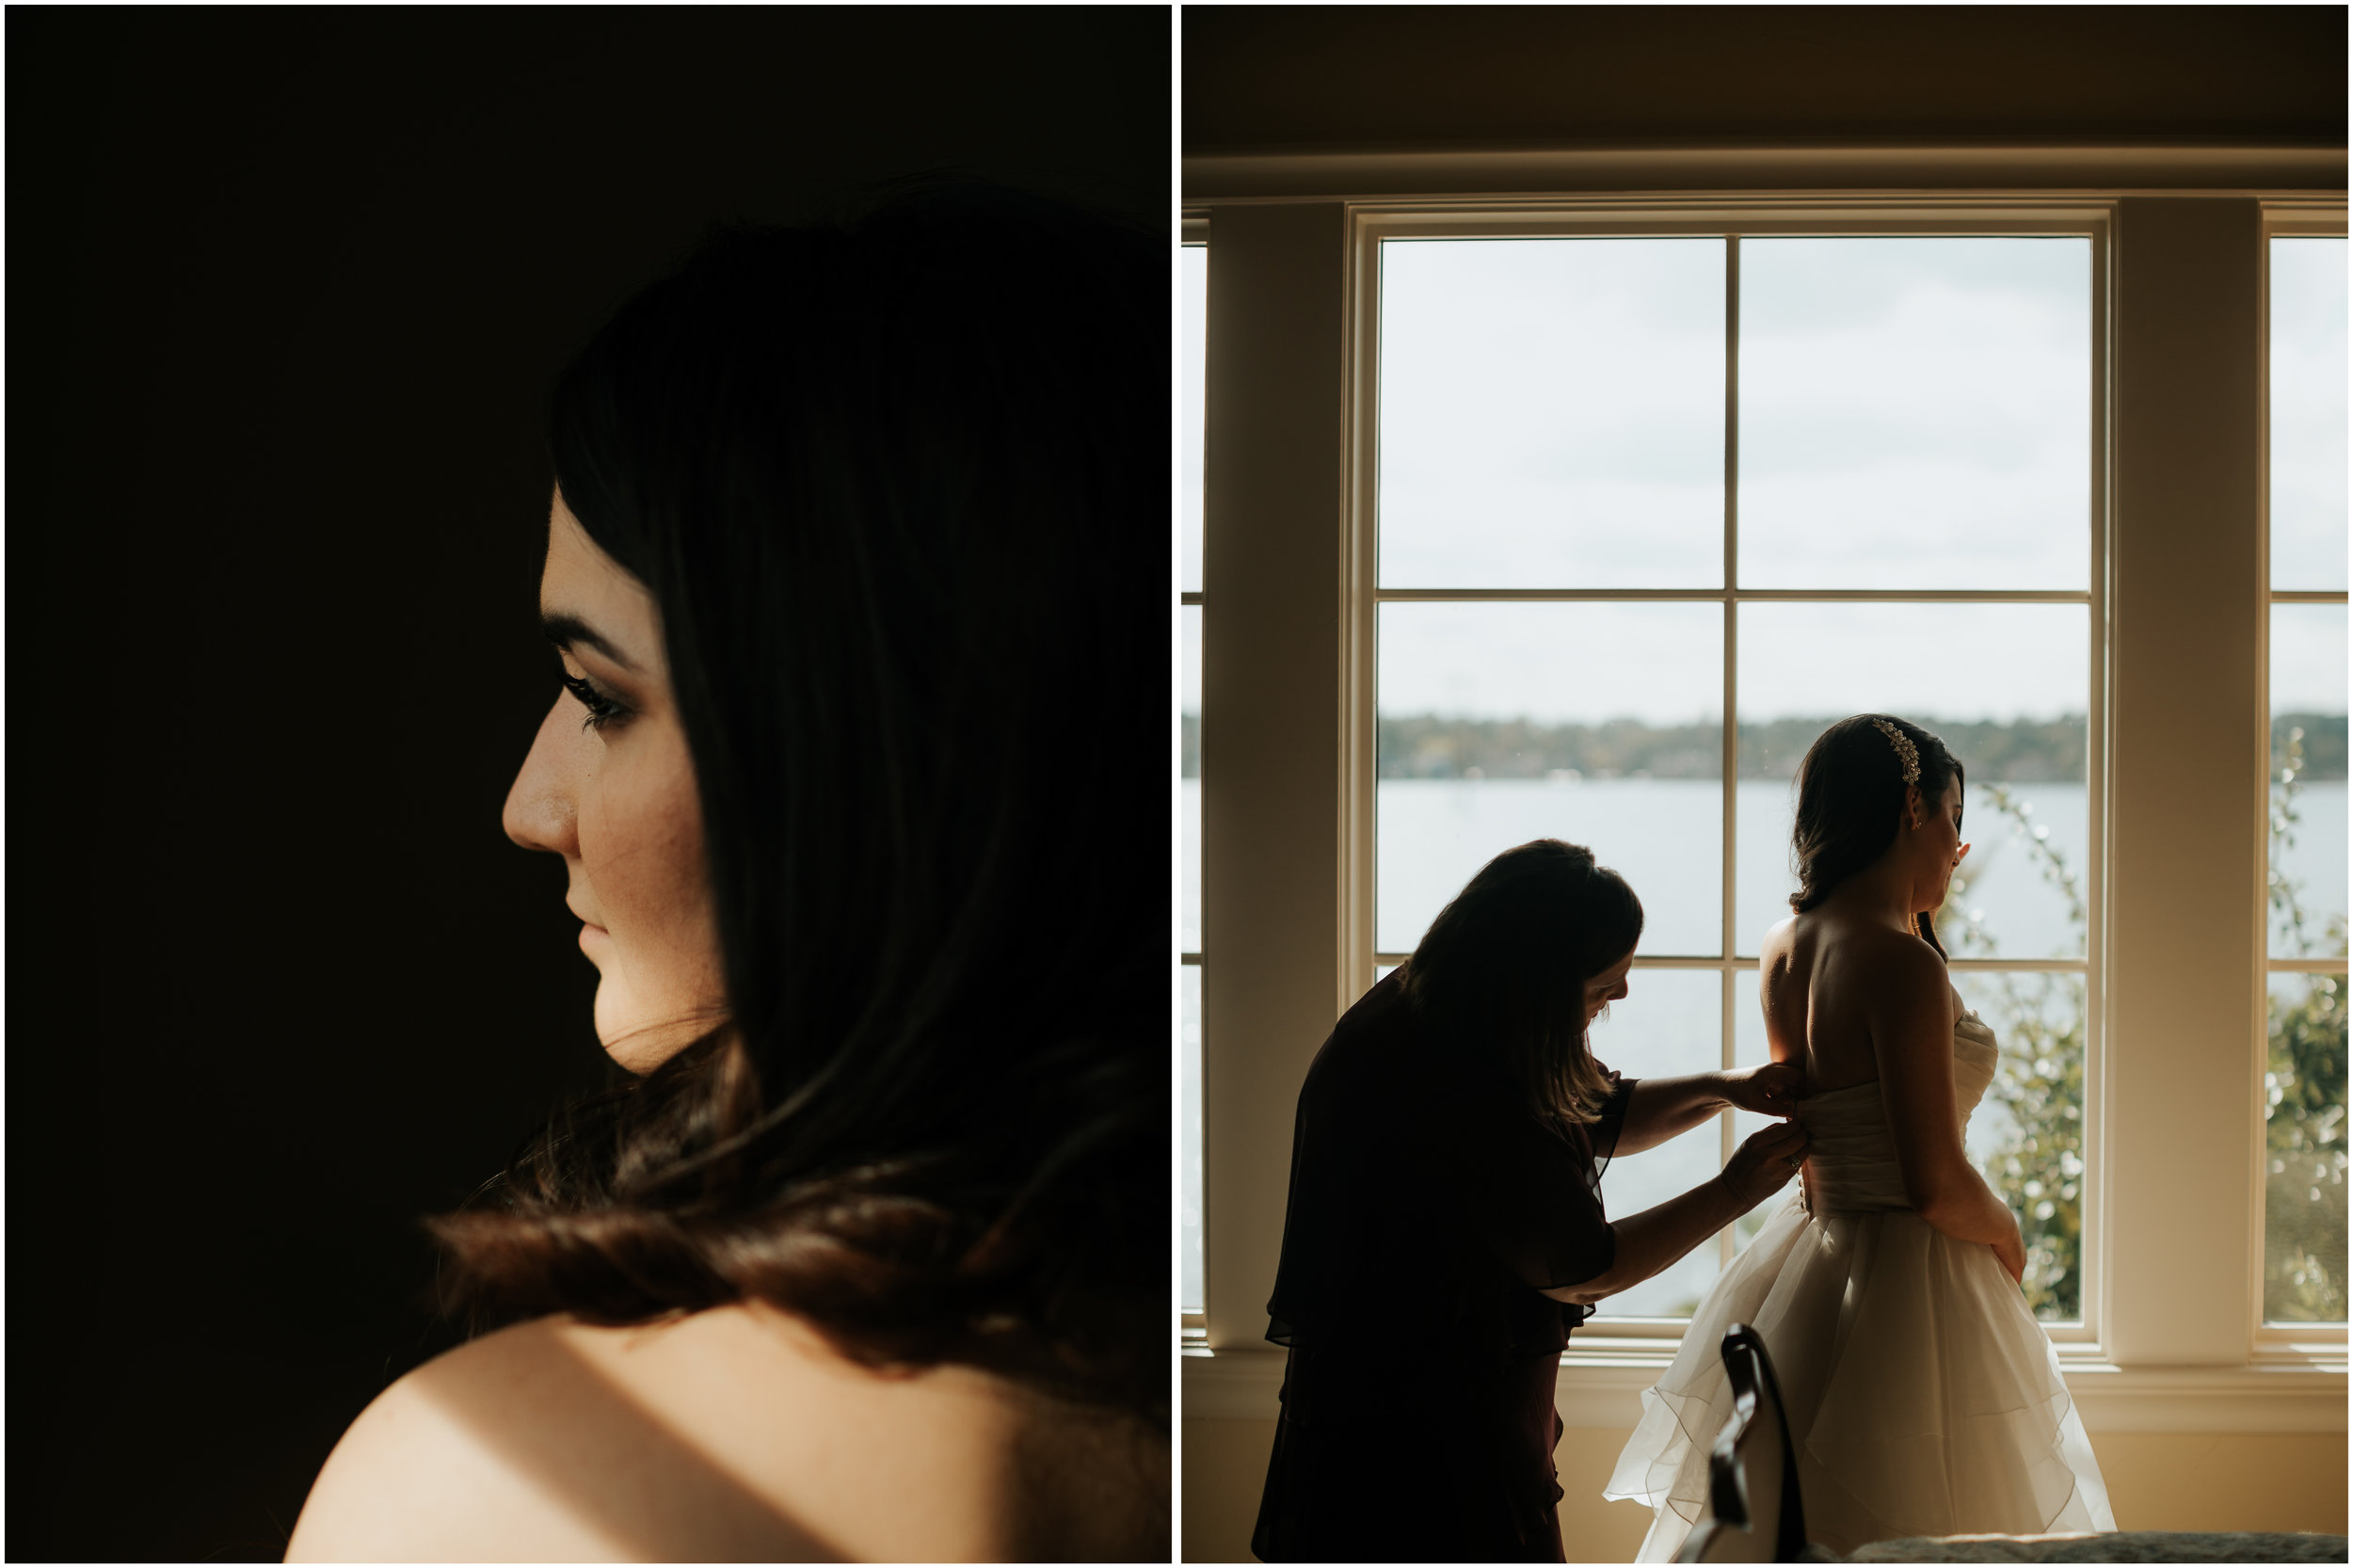 Leah Nicole Photography - Houston Wedding Photographer-Glassel Art School Engagement Session- Houston Wedding Photographer - Lake Conroe Wedding 3.jpg